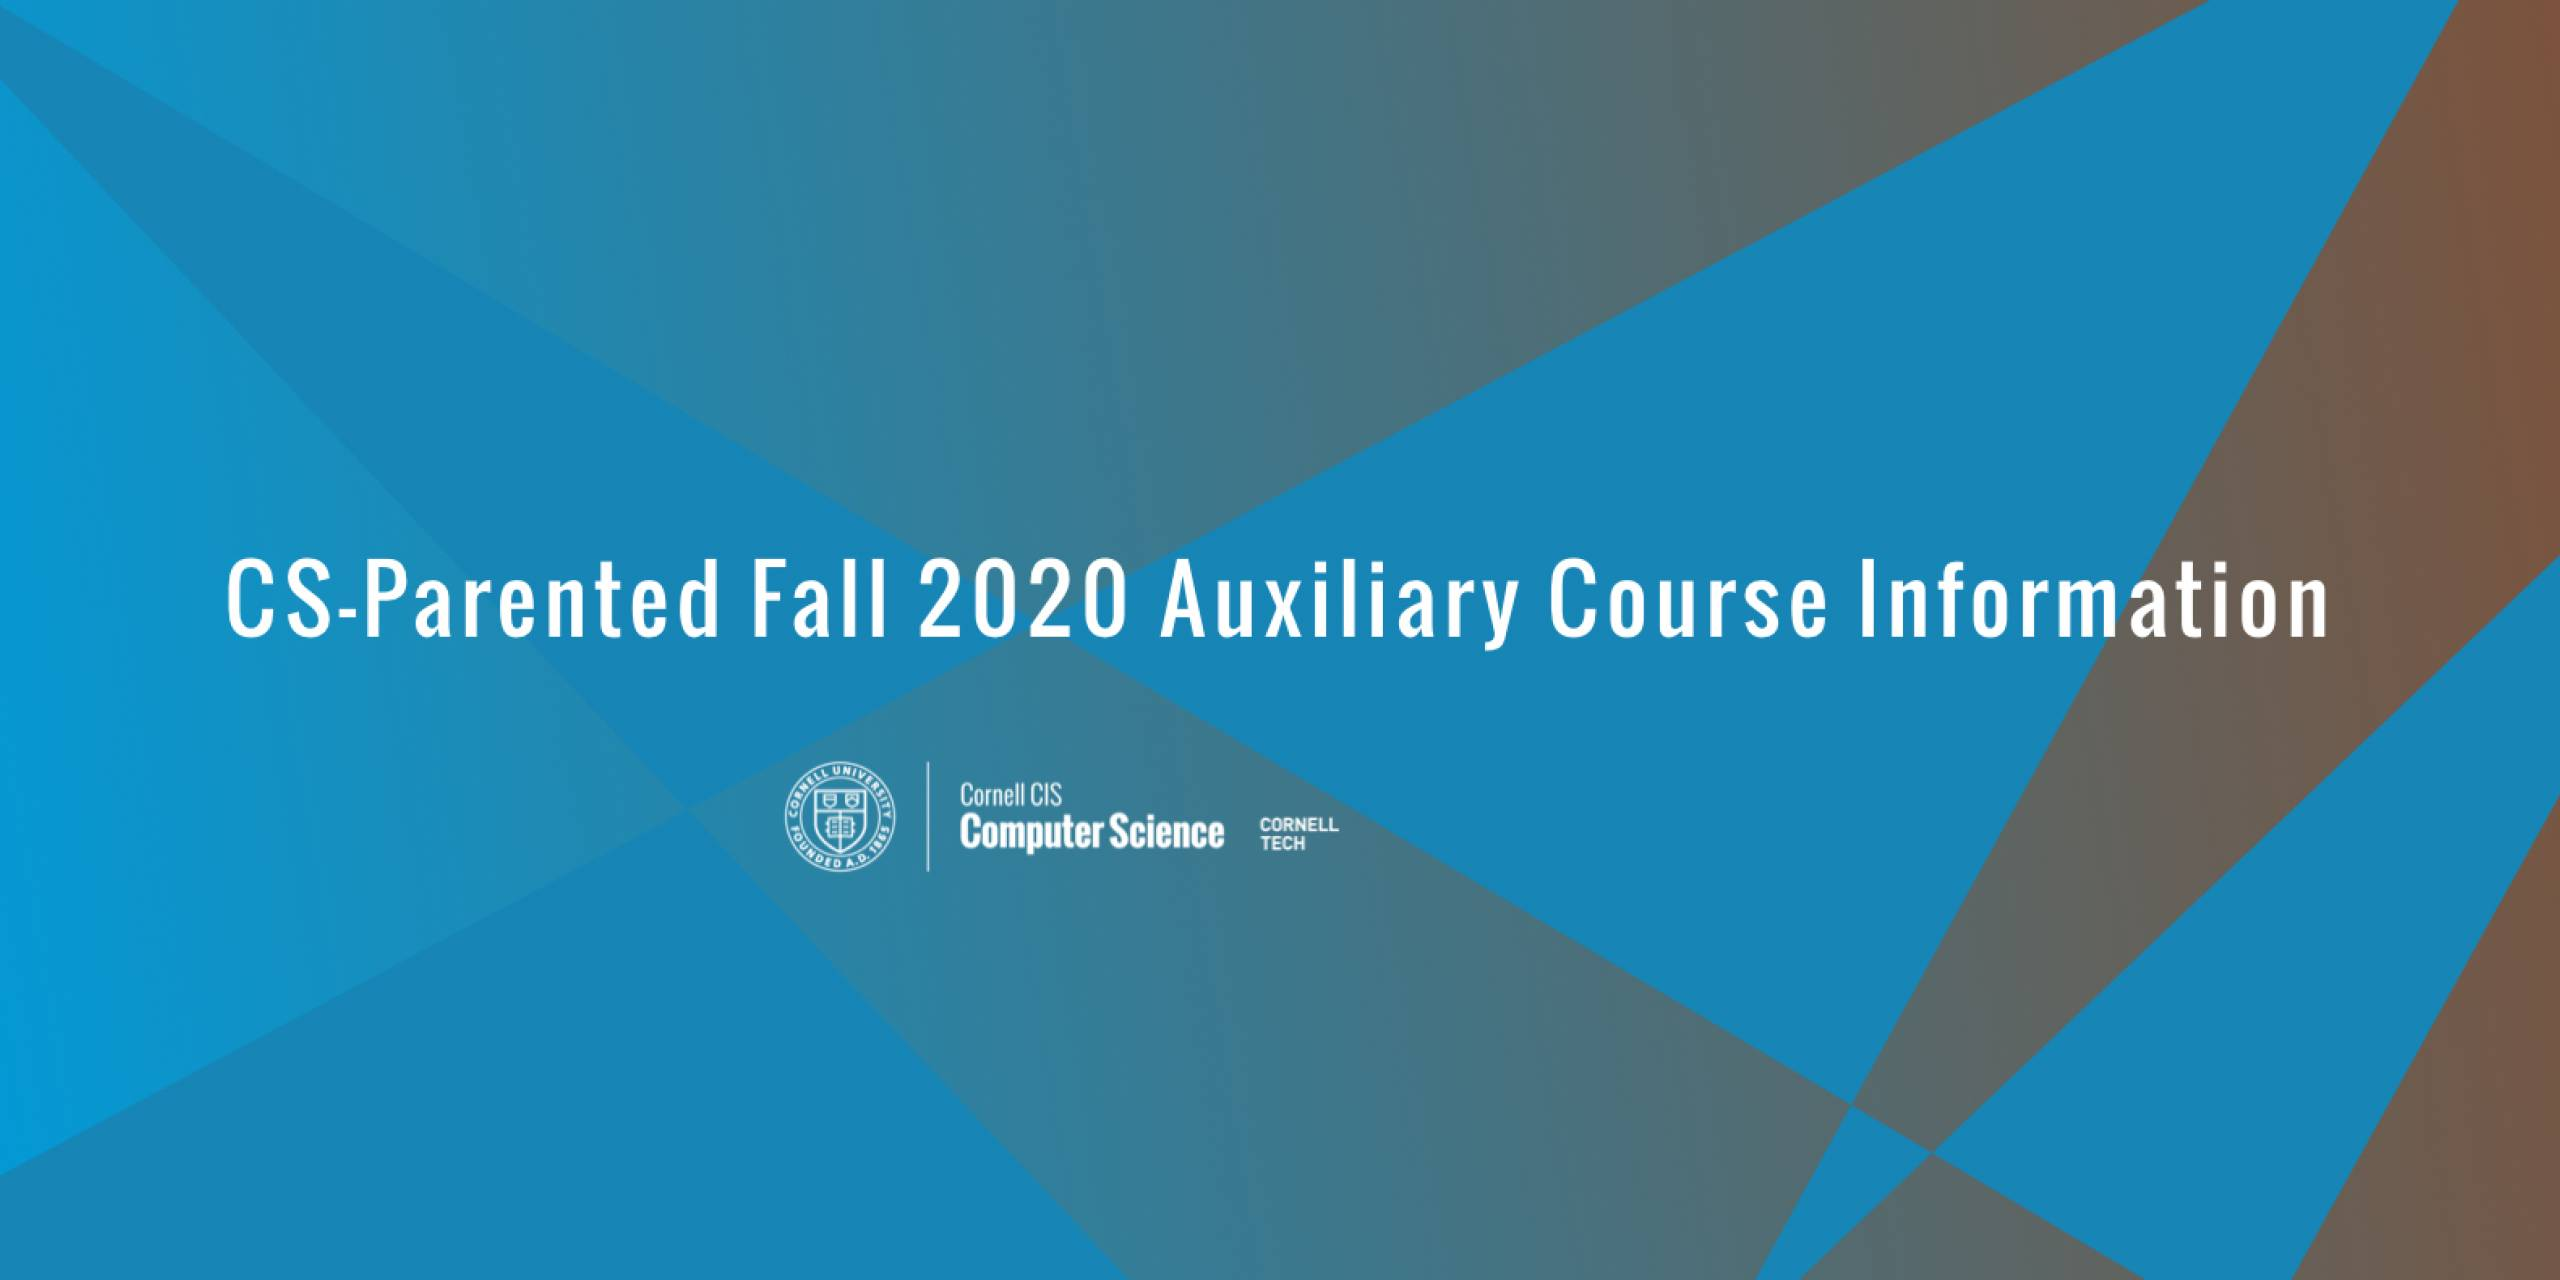 CS-Parented Fall 2020 Auxiliary Course Information